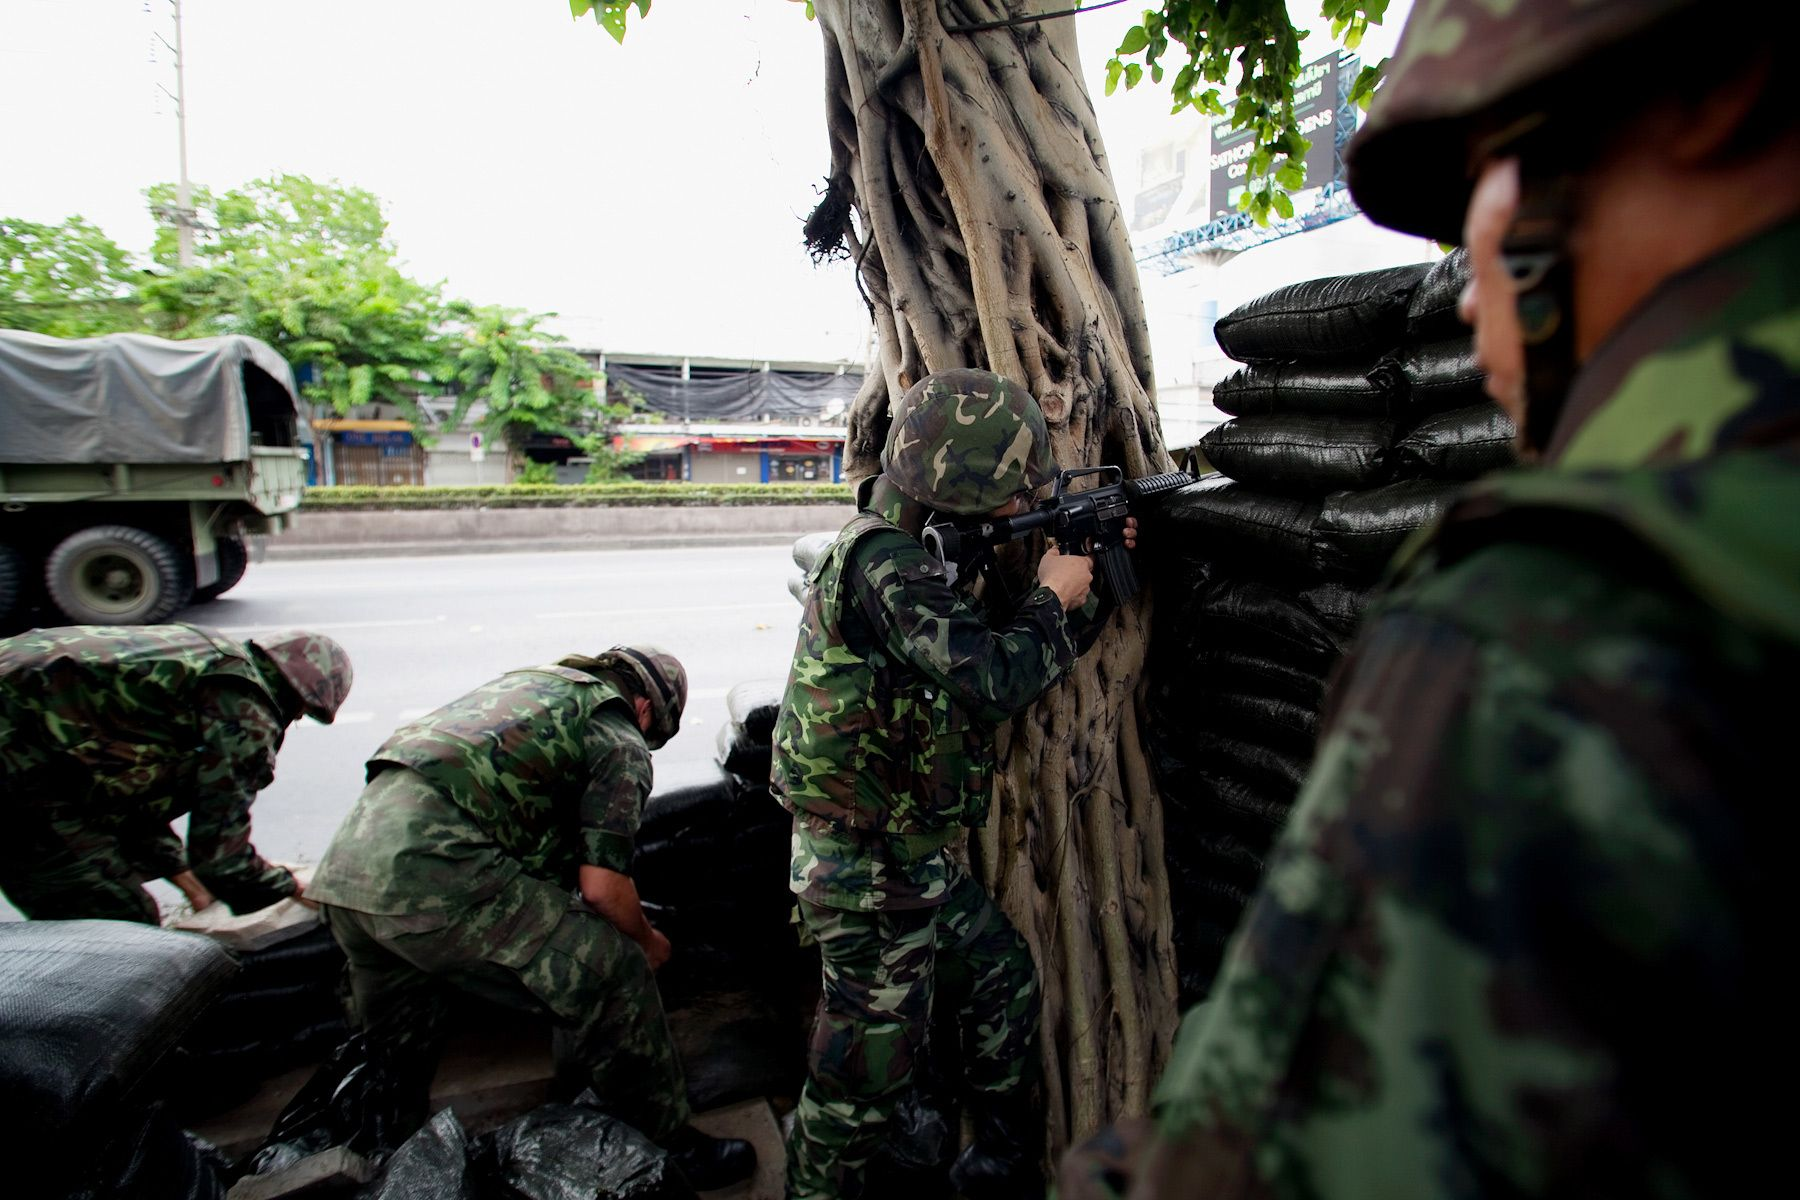 Soldiers build fortifications from sandbags near The United Front for Democracy Against Dictatorship (UDD) demonstration site.